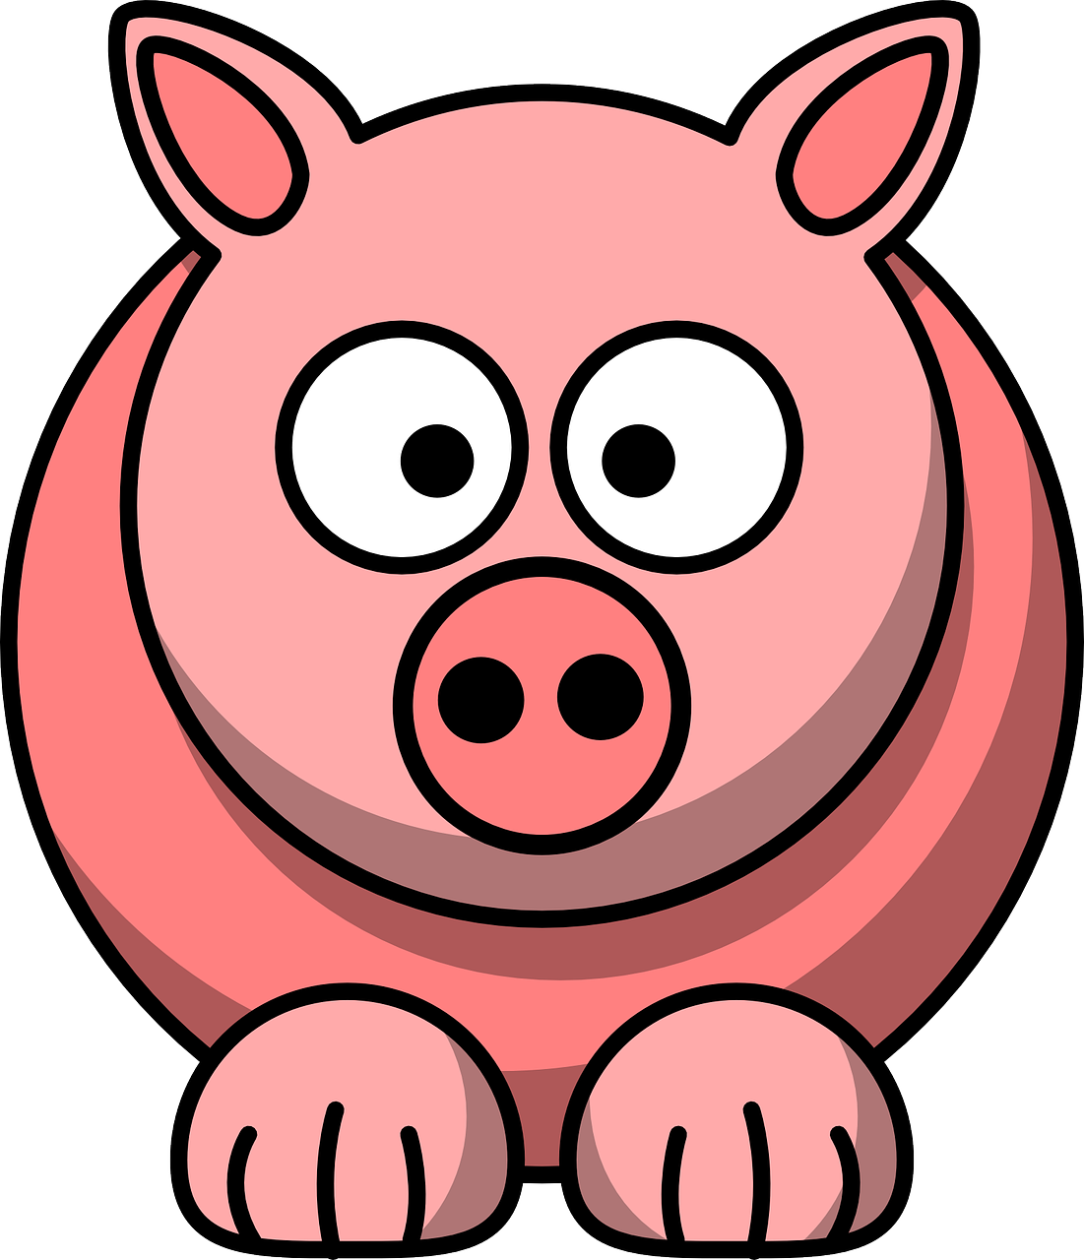 Hog clipart pink thing. Pig math for love